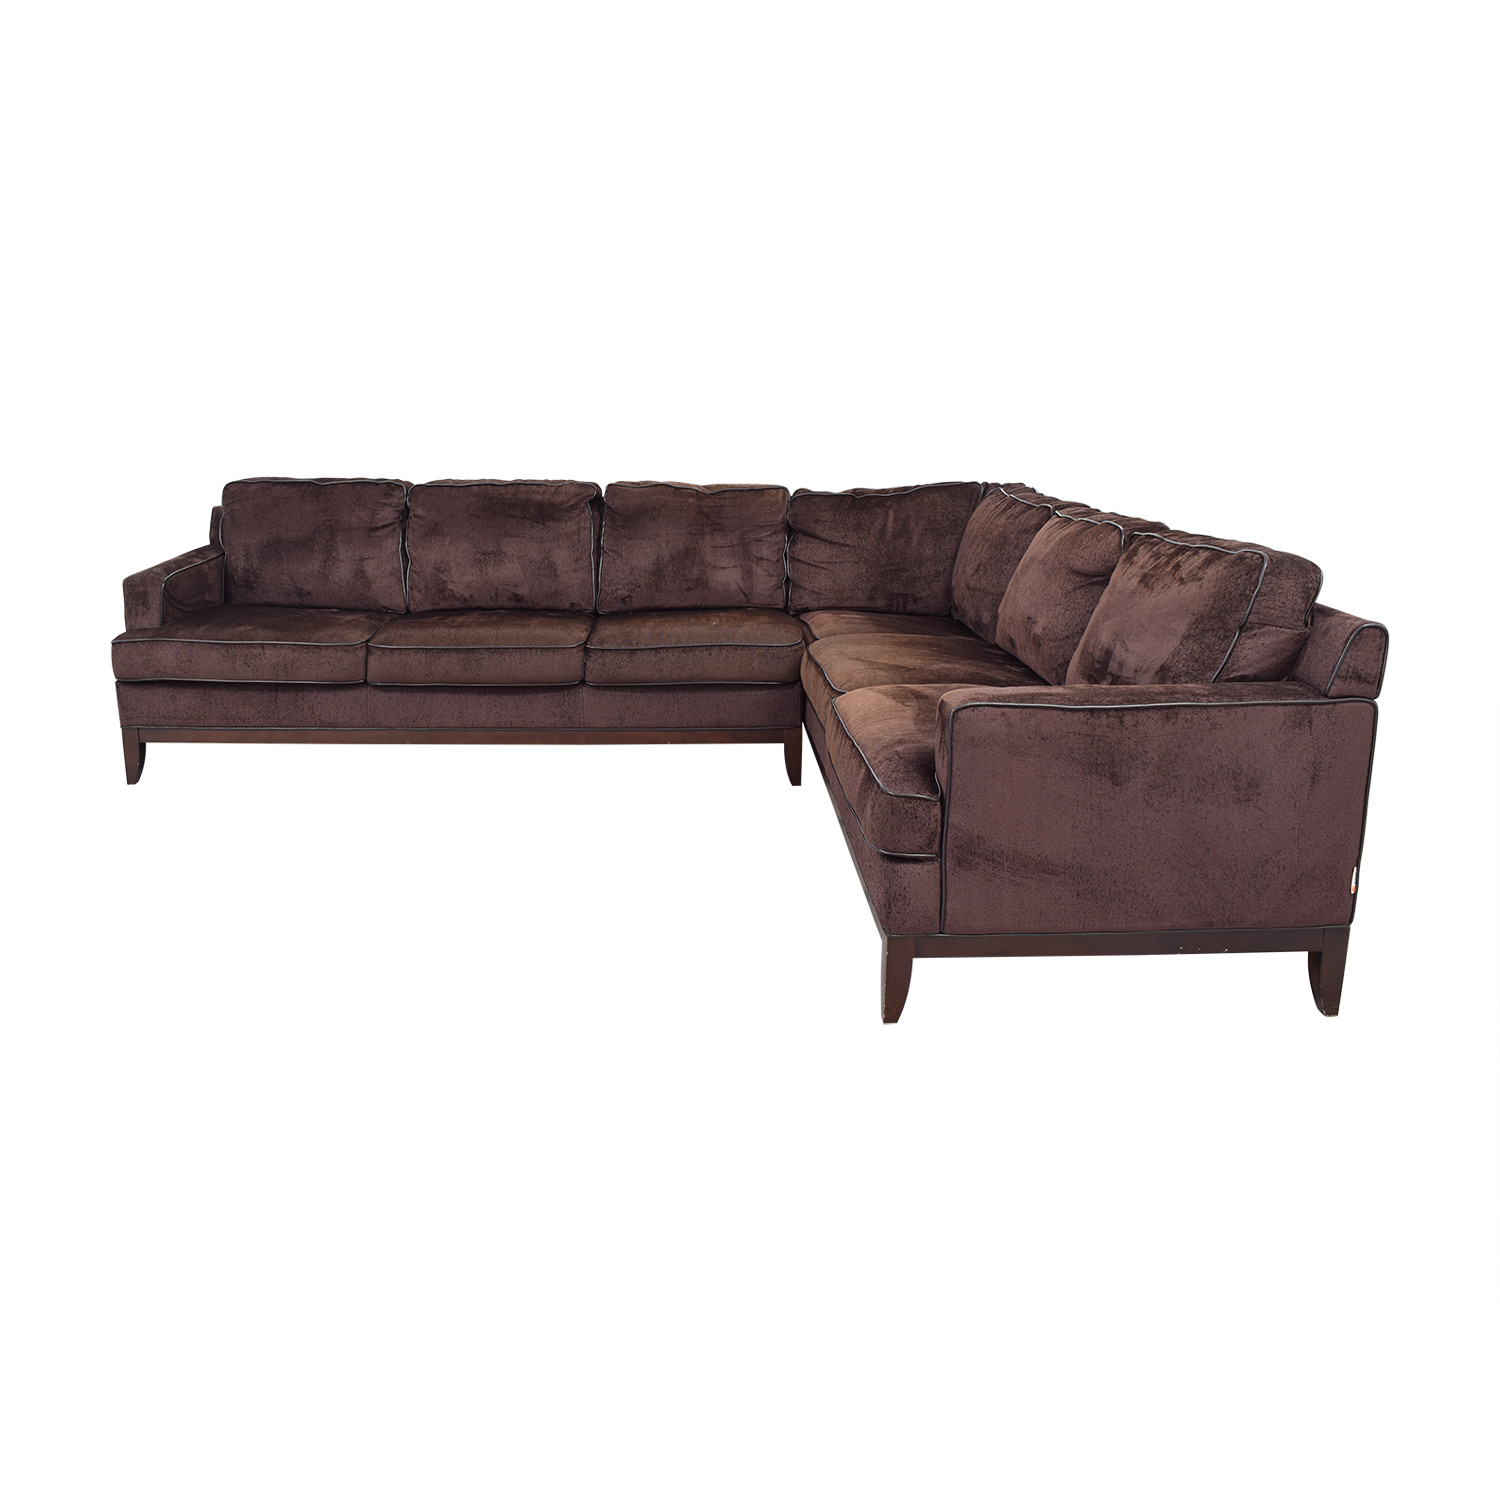 Simon Li Simon Li Sectional Sofa second hand